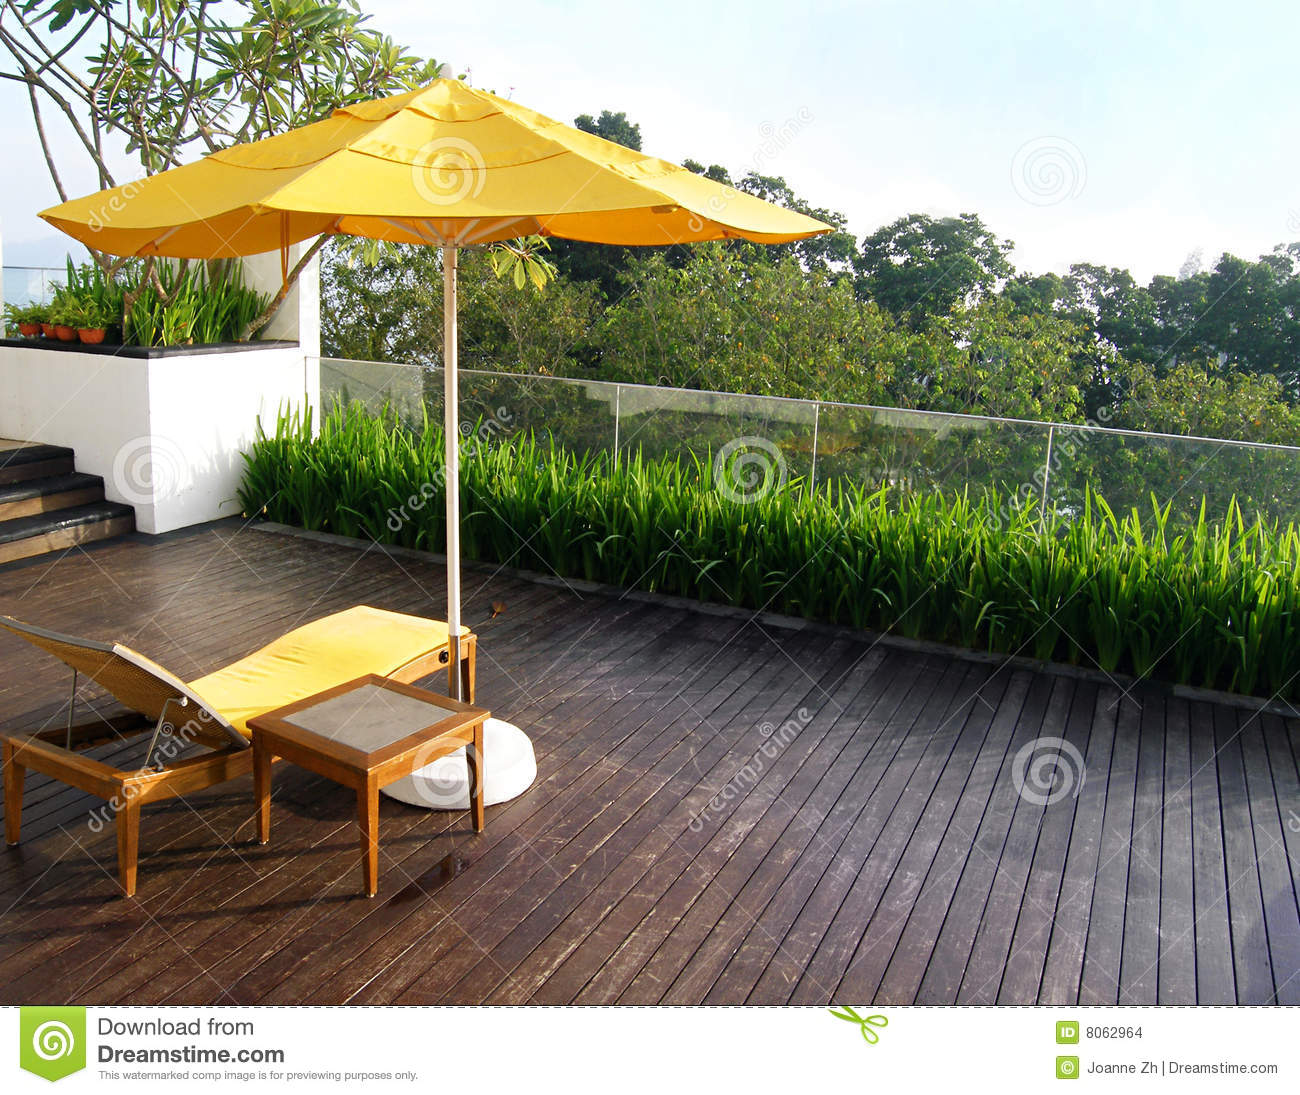 Balcony Garden Design Stock Images - Image: 8062964